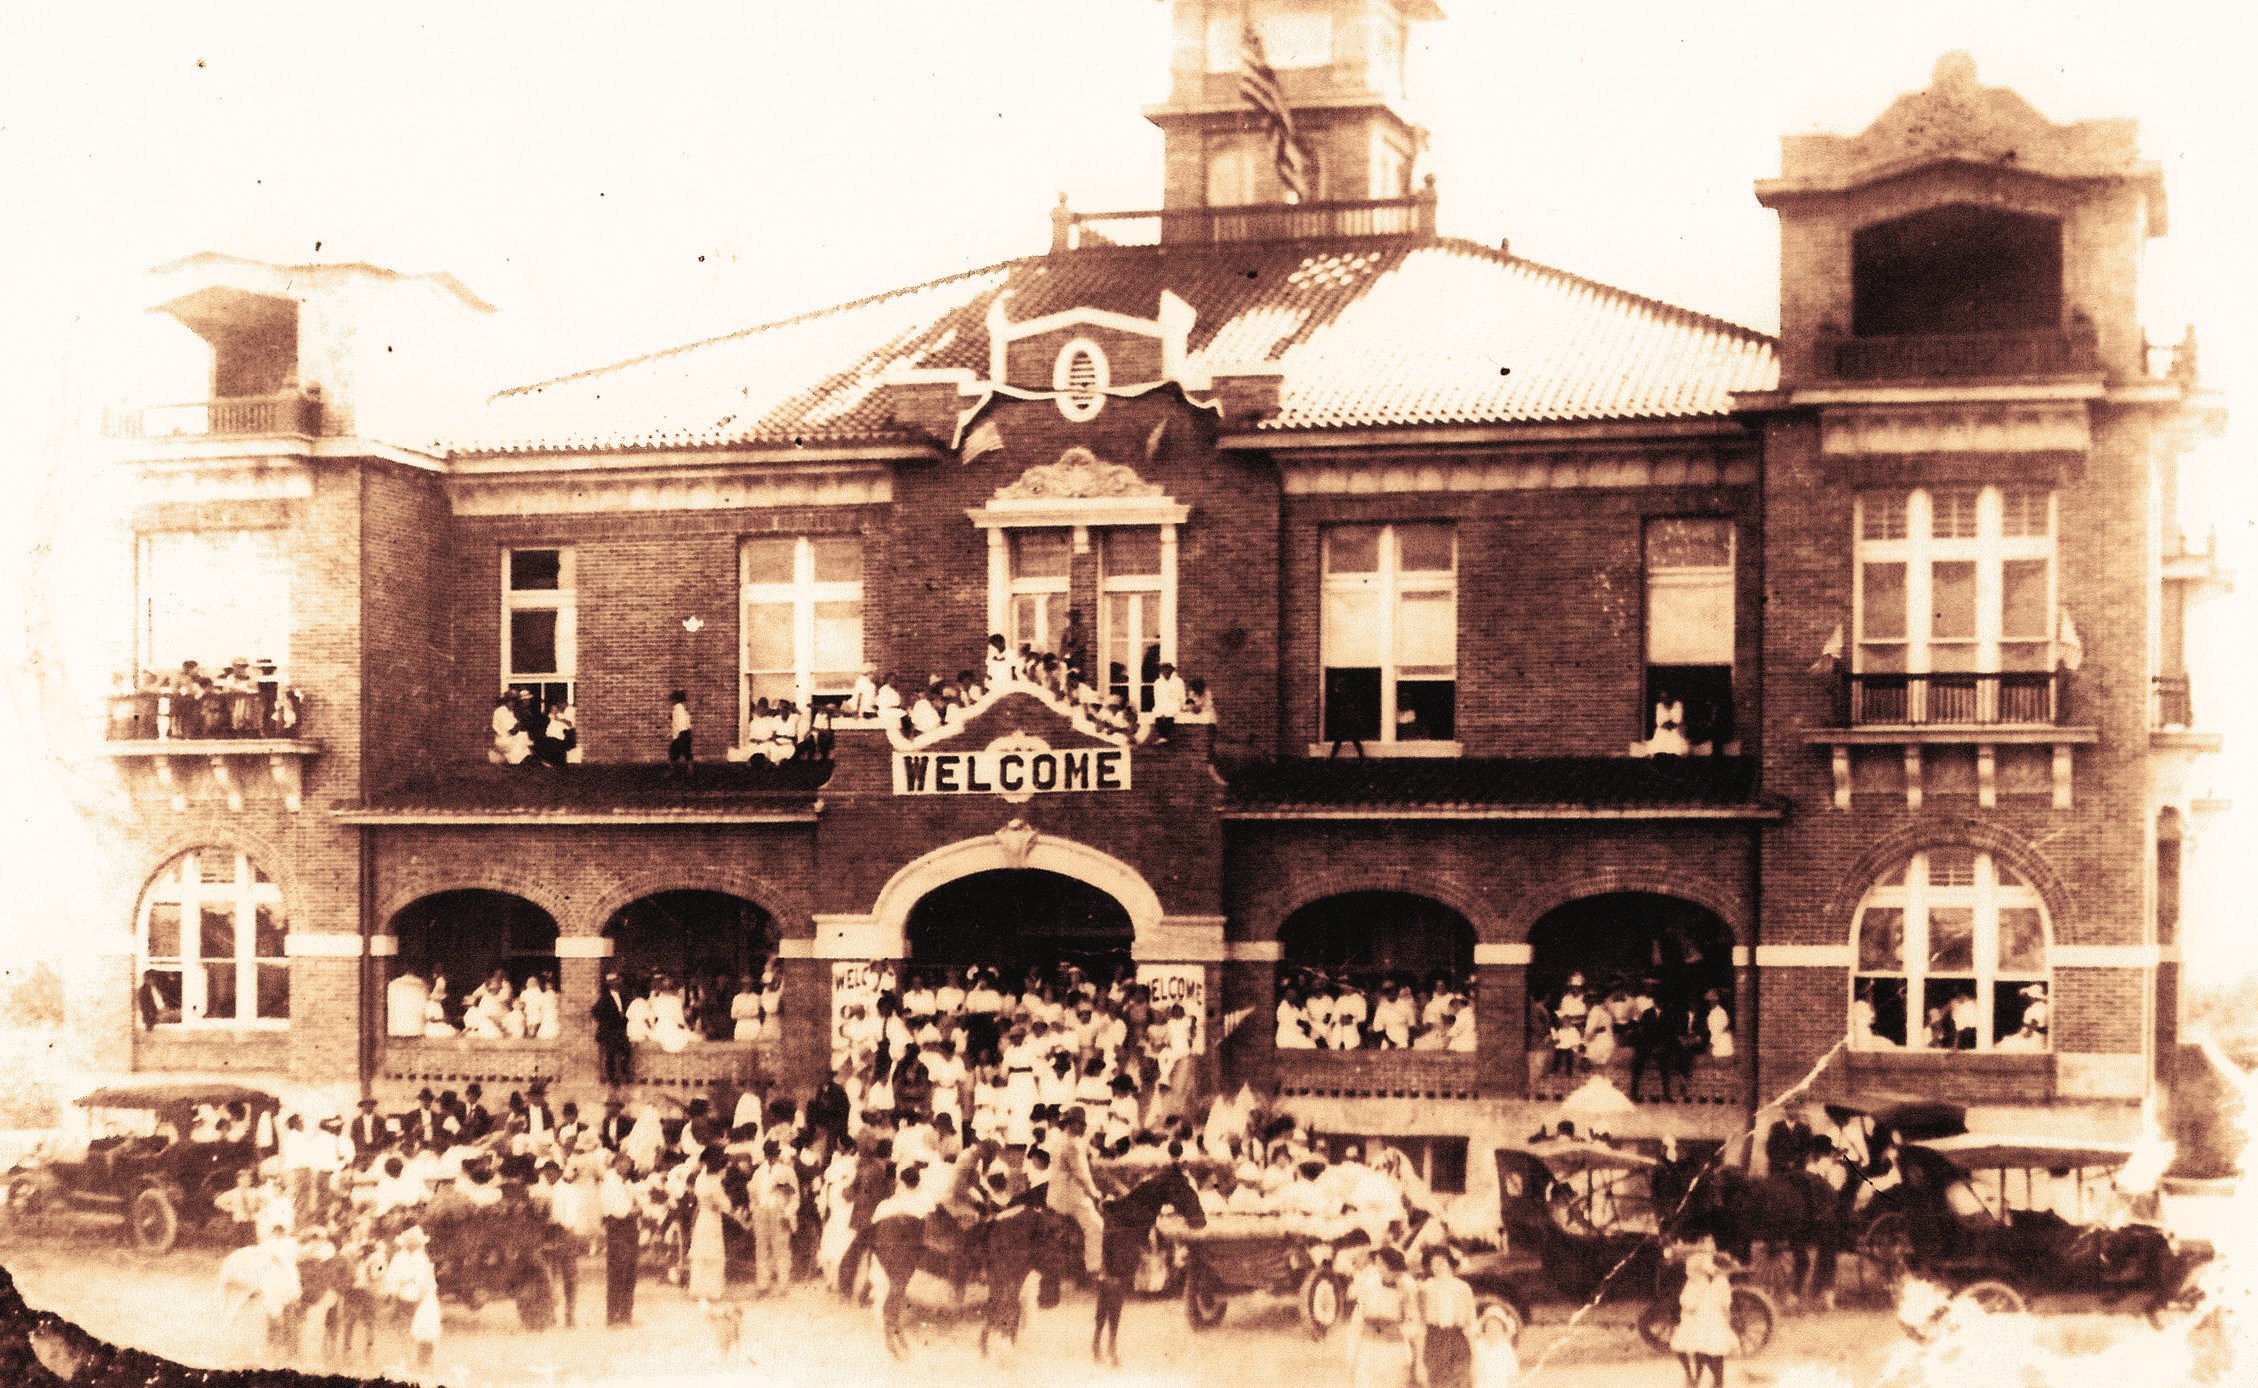 This photo of the courthouse (circa 1913) was most likley captured on the opening day of the new building. This particular image was found during an earlier renovation of the courthouse by Norman Porter Sr., historian, and Joe Cantu a courthouse employee, according to Atascosa County Judge Diana Bautista.